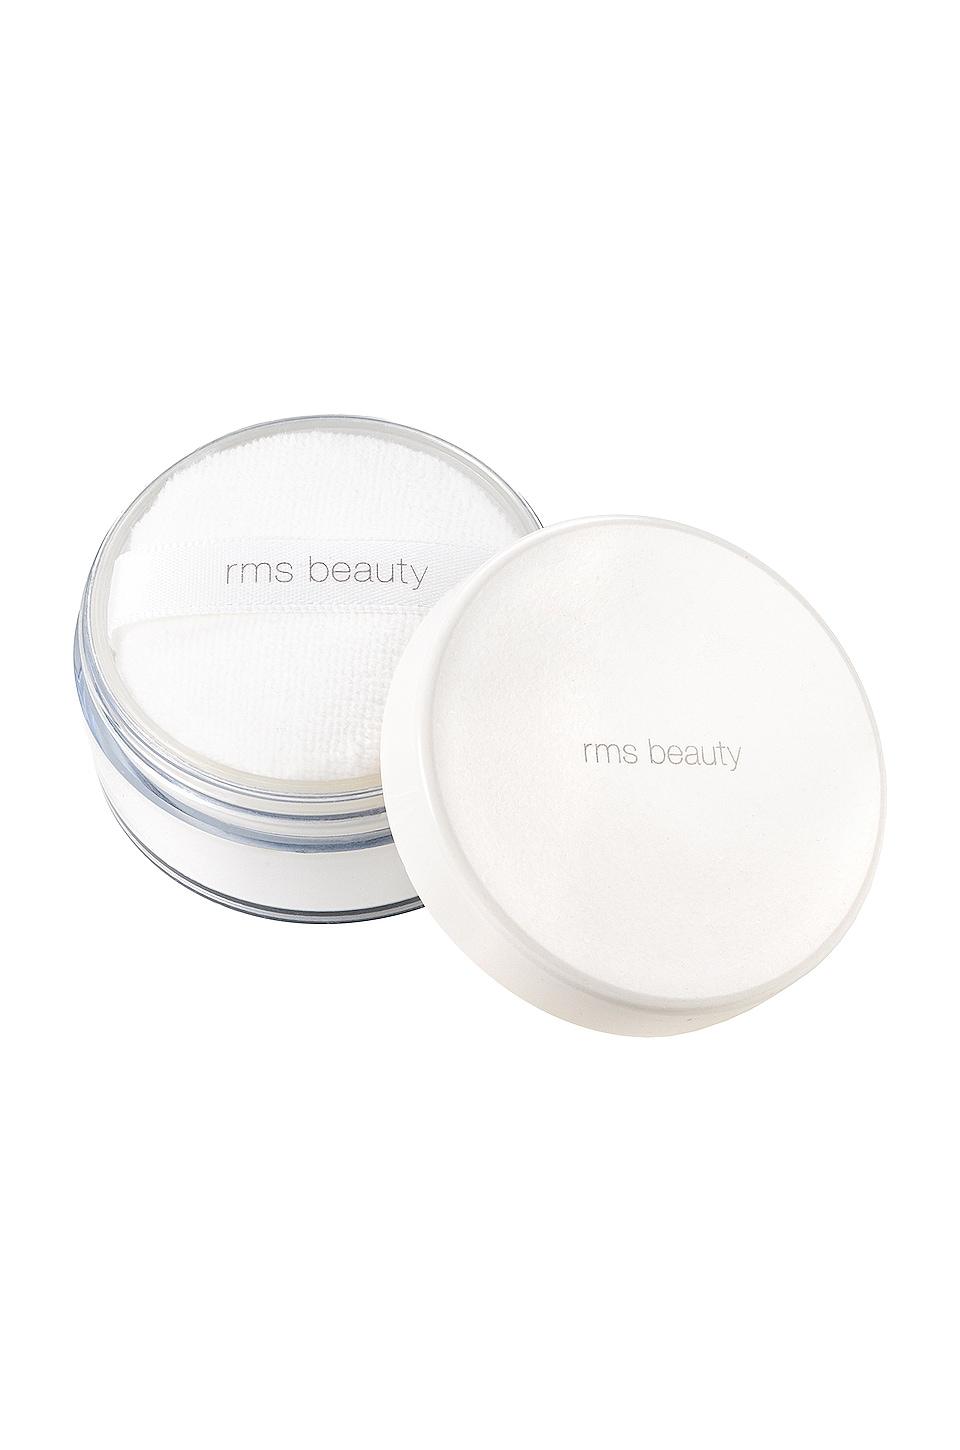 RMS Beauty Un Powder in Translucent